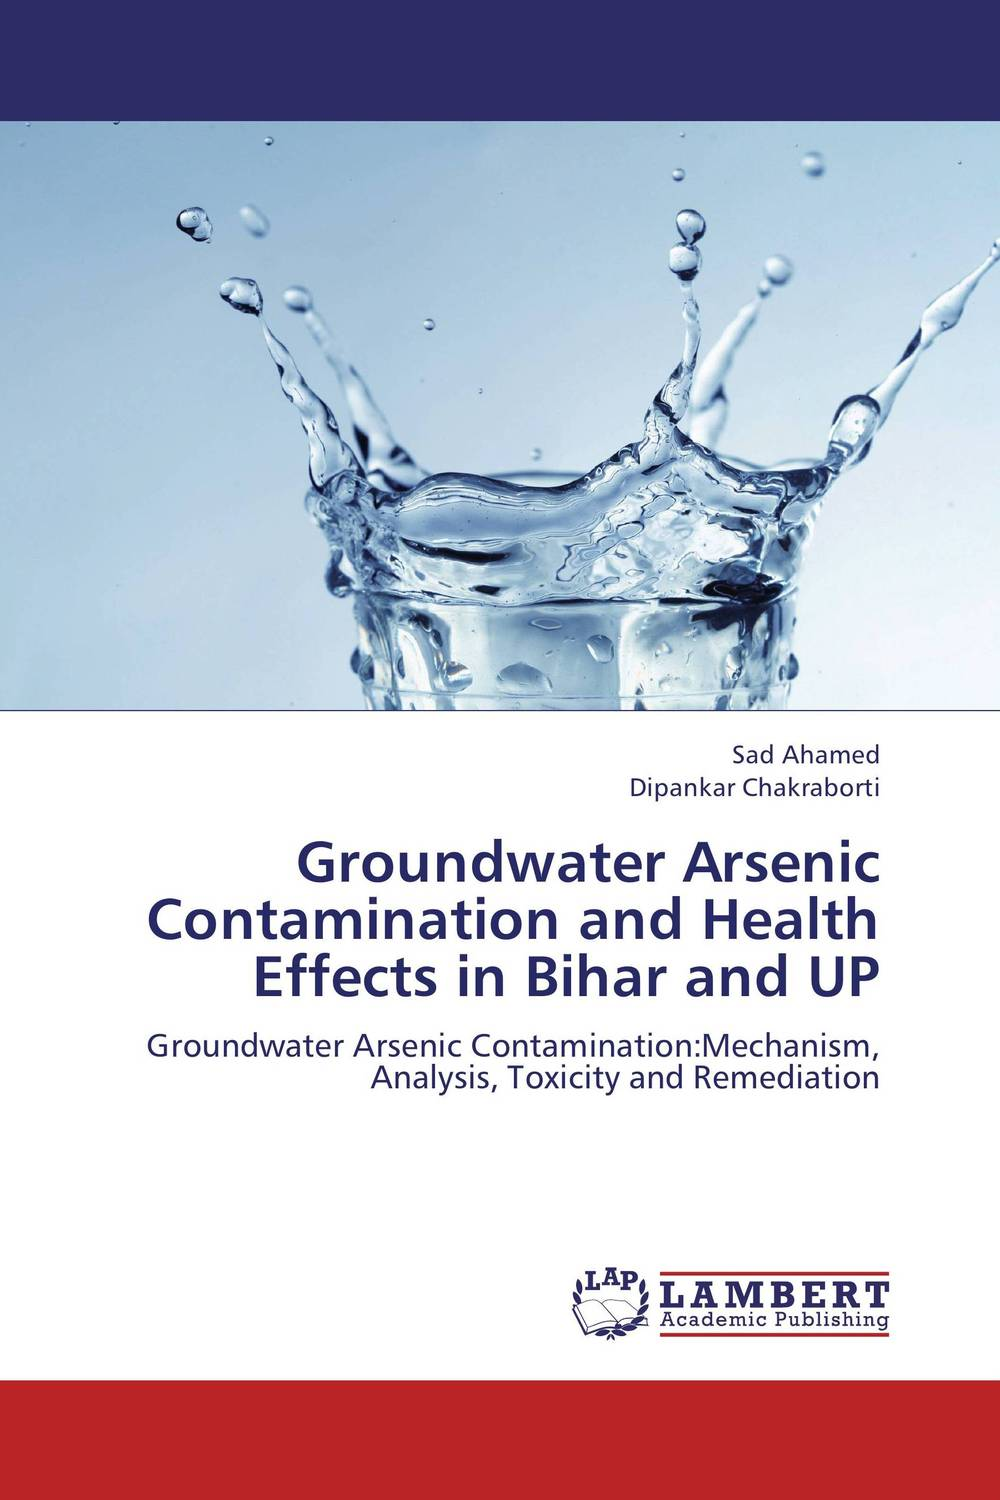 Groundwater Arsenic Contamination and Health Effects in Bihar and UP sources of chloride and its impact on groundwater